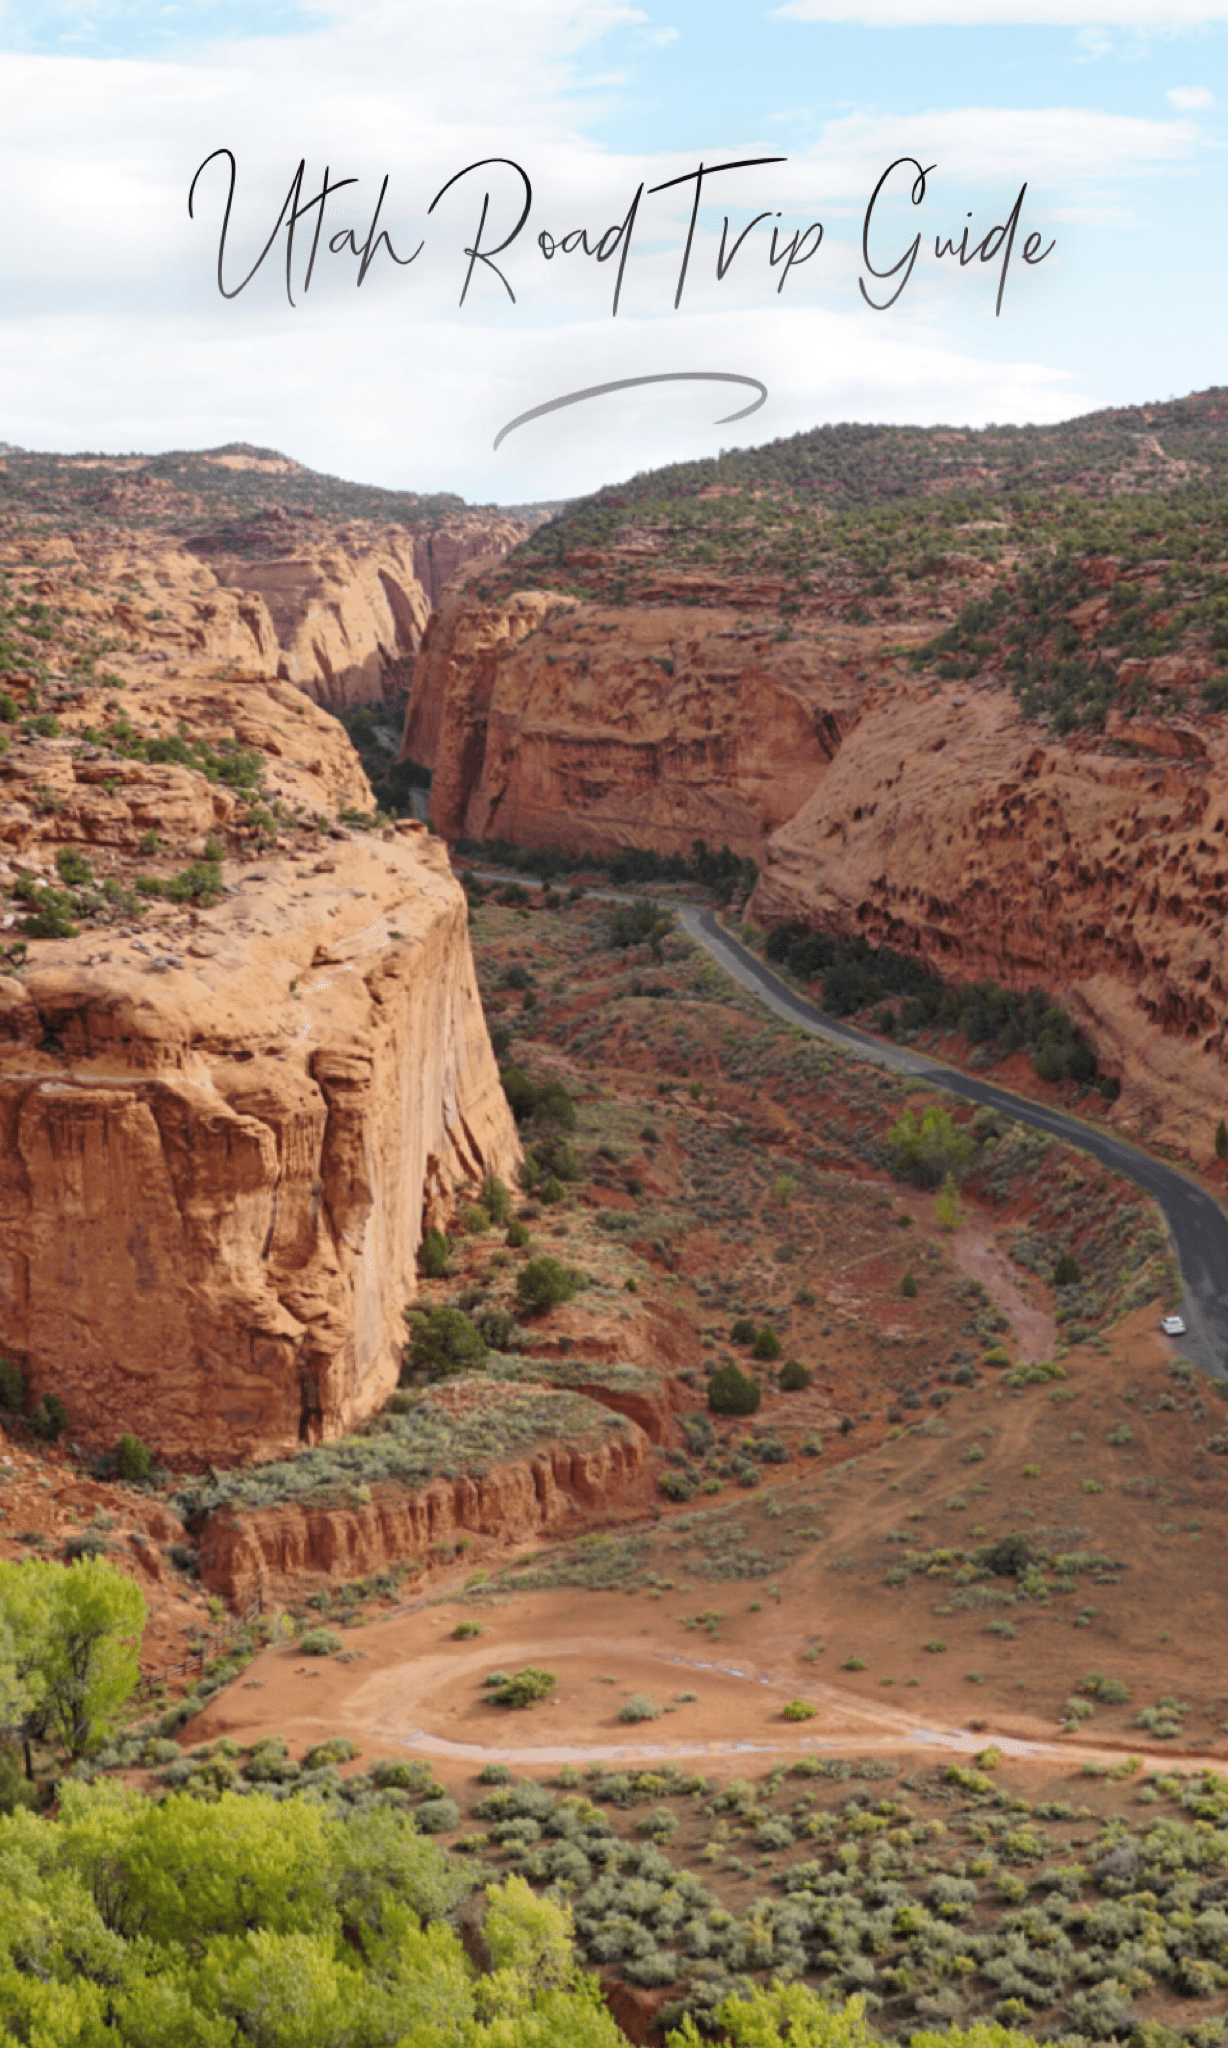 An Adventurous Family Road Trip in Utah. Renting side-by-sides in Moab, glamping in Boulder, and Jeeping the Burr Trail. - Appalachian Trail Girl #lifeelevated #beautaful #visitutah #visitmoab #familyroad trip #utahliving